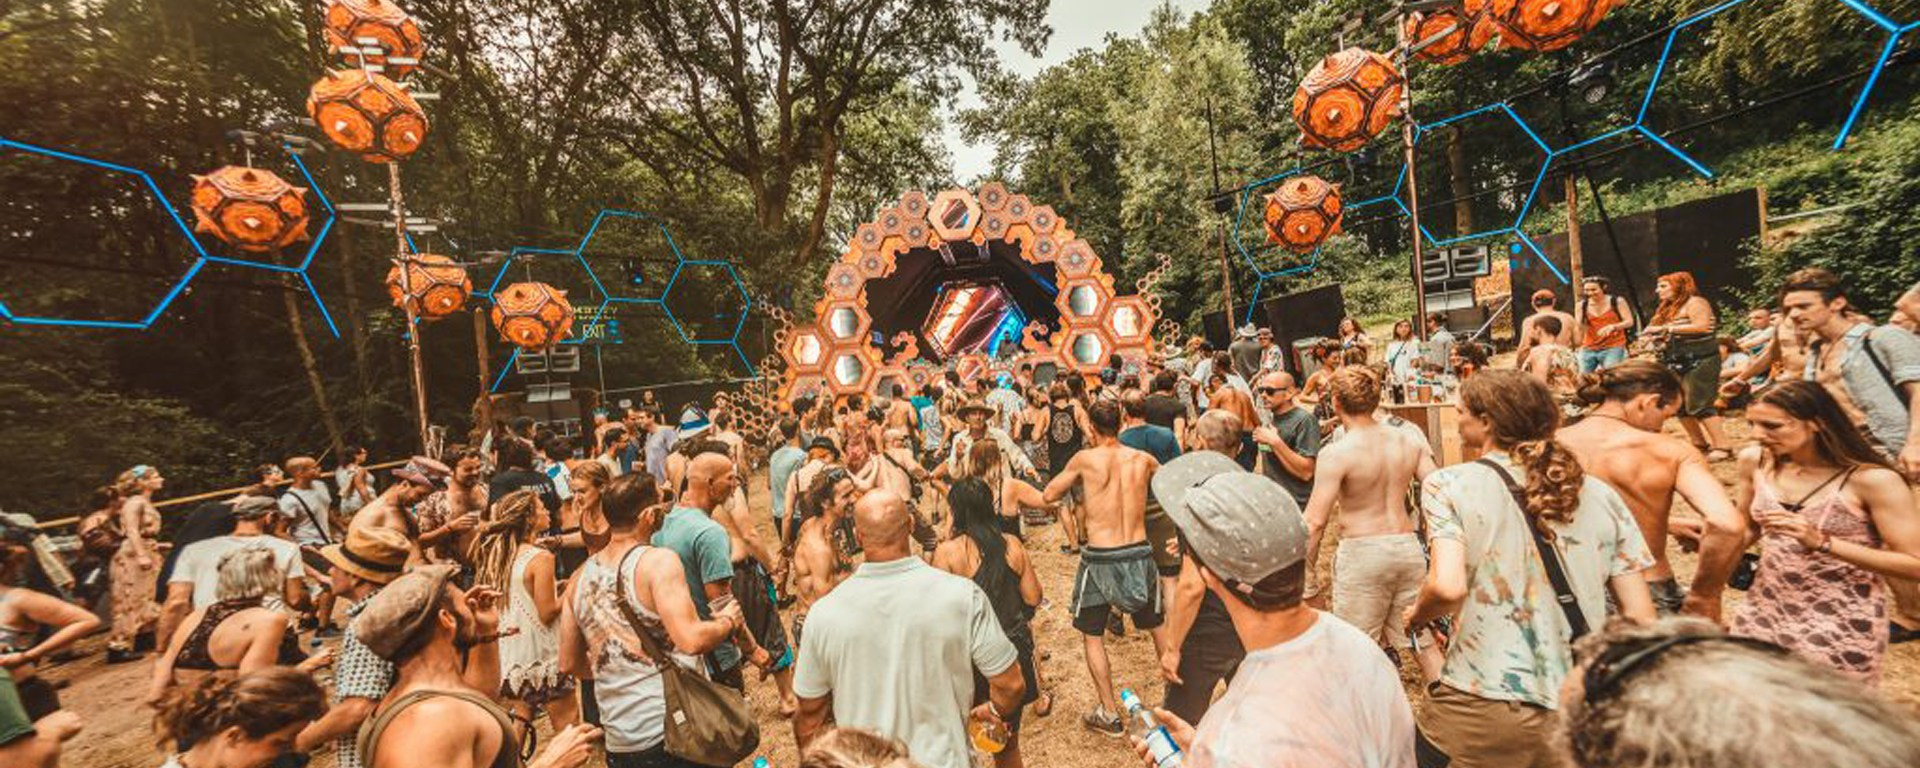 NOISILY_festival_tunes&wings_2018-103-1024x684